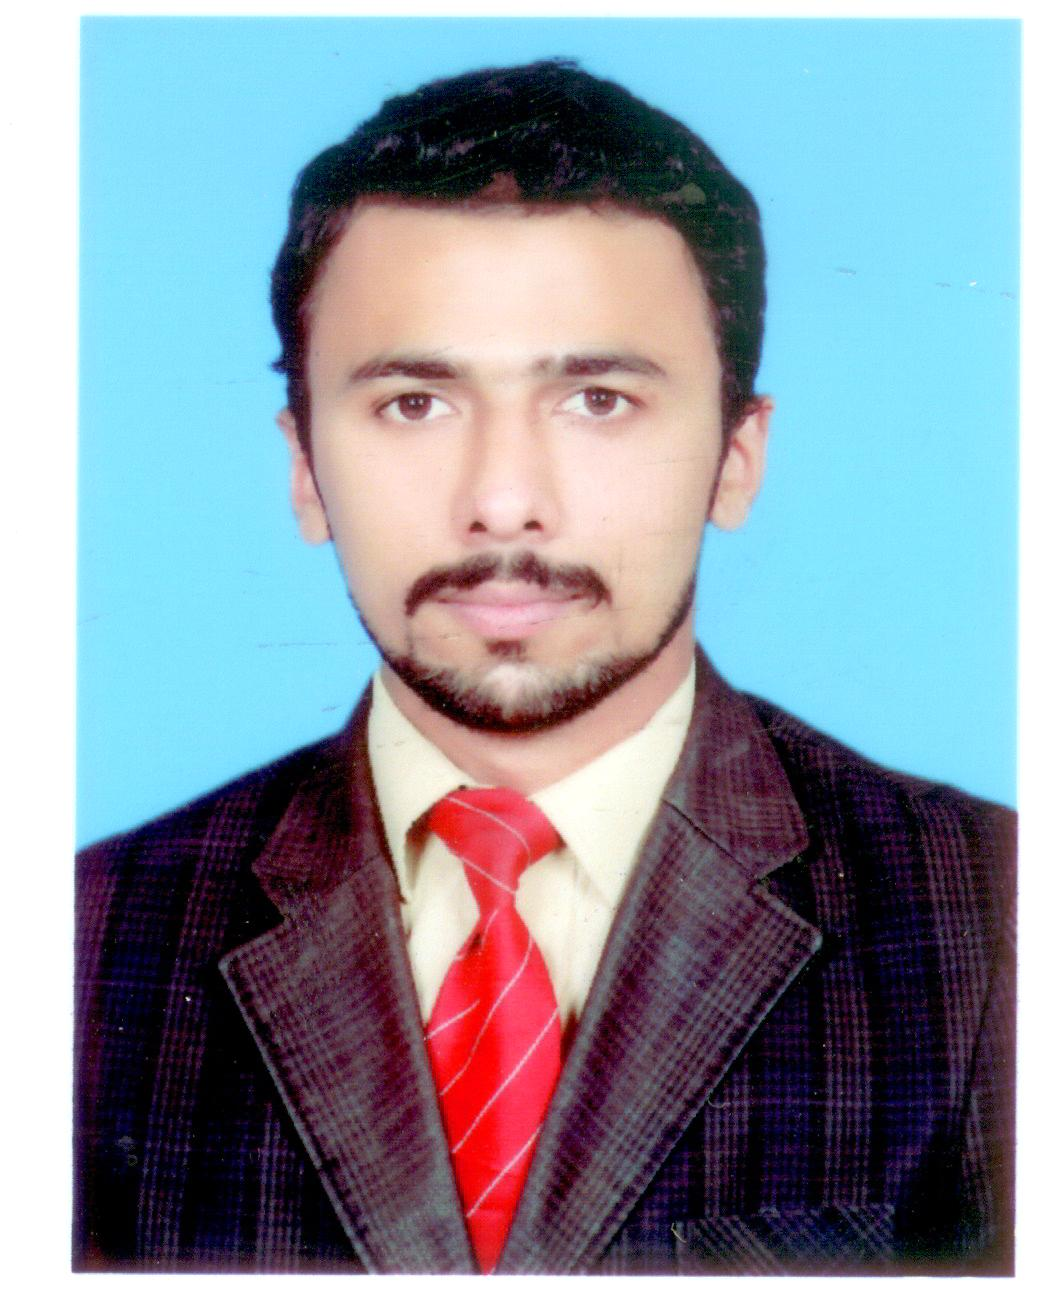 Engineer Khurram Arif Structural Engineering, Project Scheduling, Construction Monitoring, Civil Engineering, Building